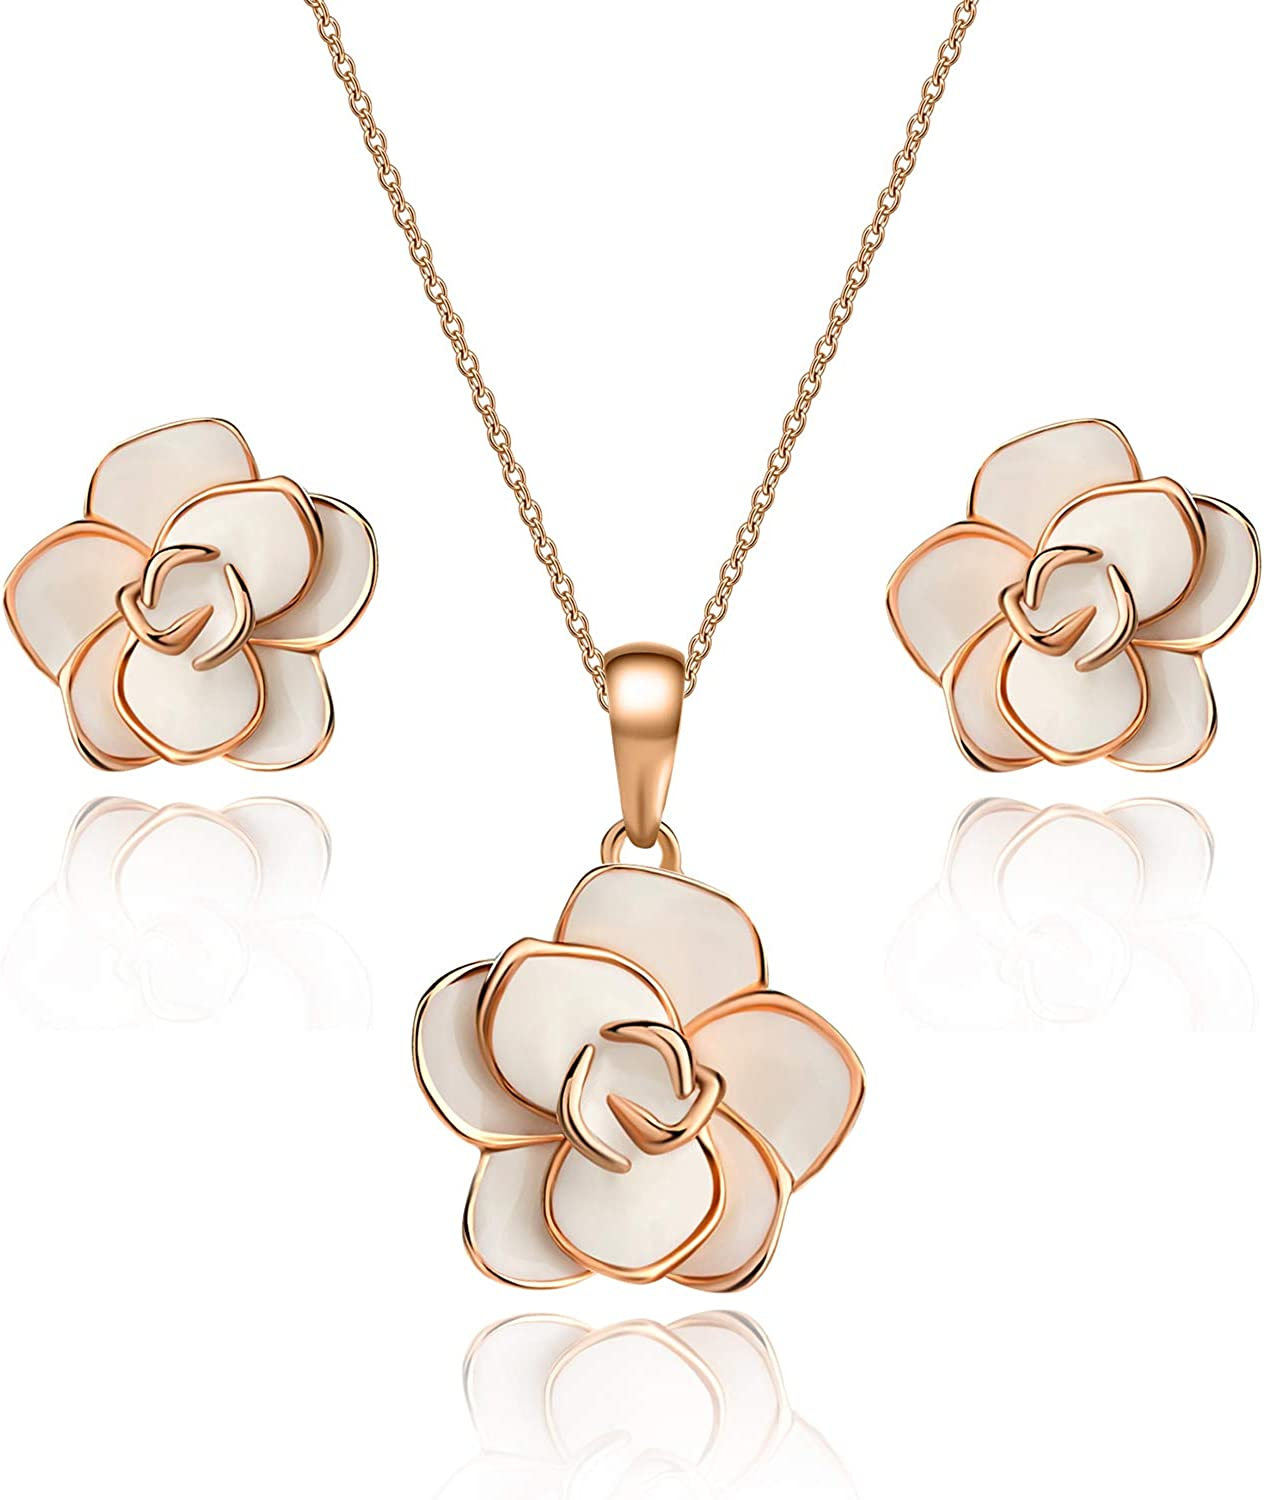 Rose Topics on TV Flower Necklace Earrings Set for 18K Women Gold 5% OFF Hypo Plated